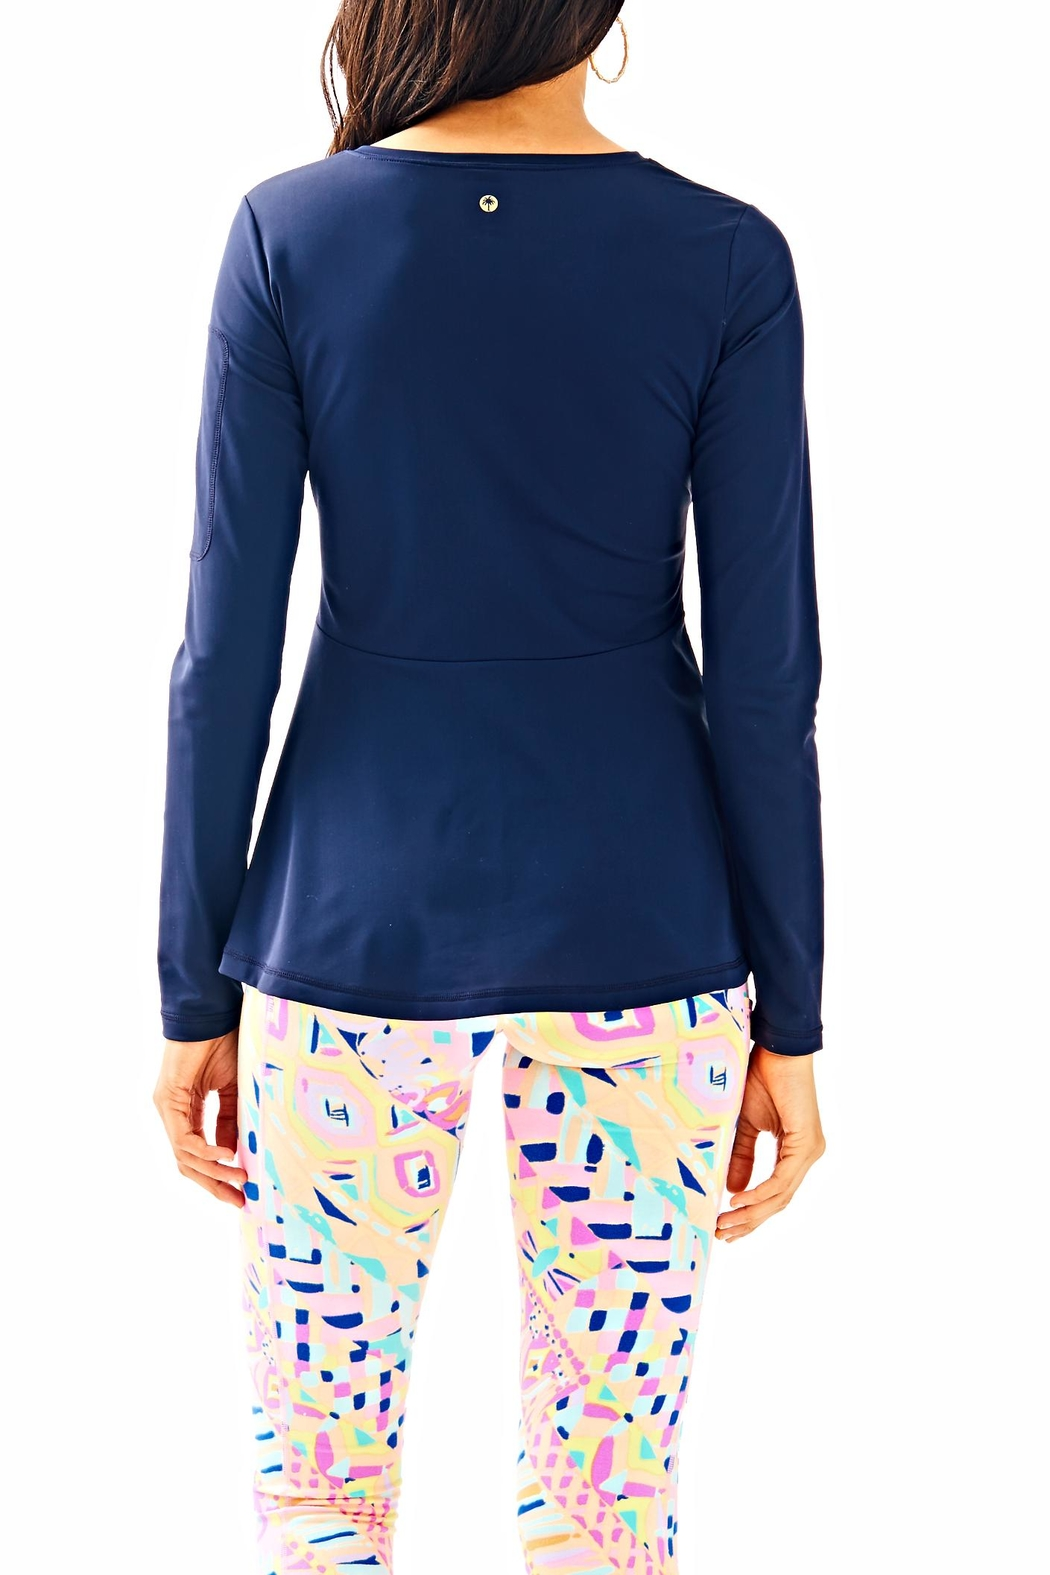 Lilly Pulitzer Luxletic Adley Sunguard - Front Full Image